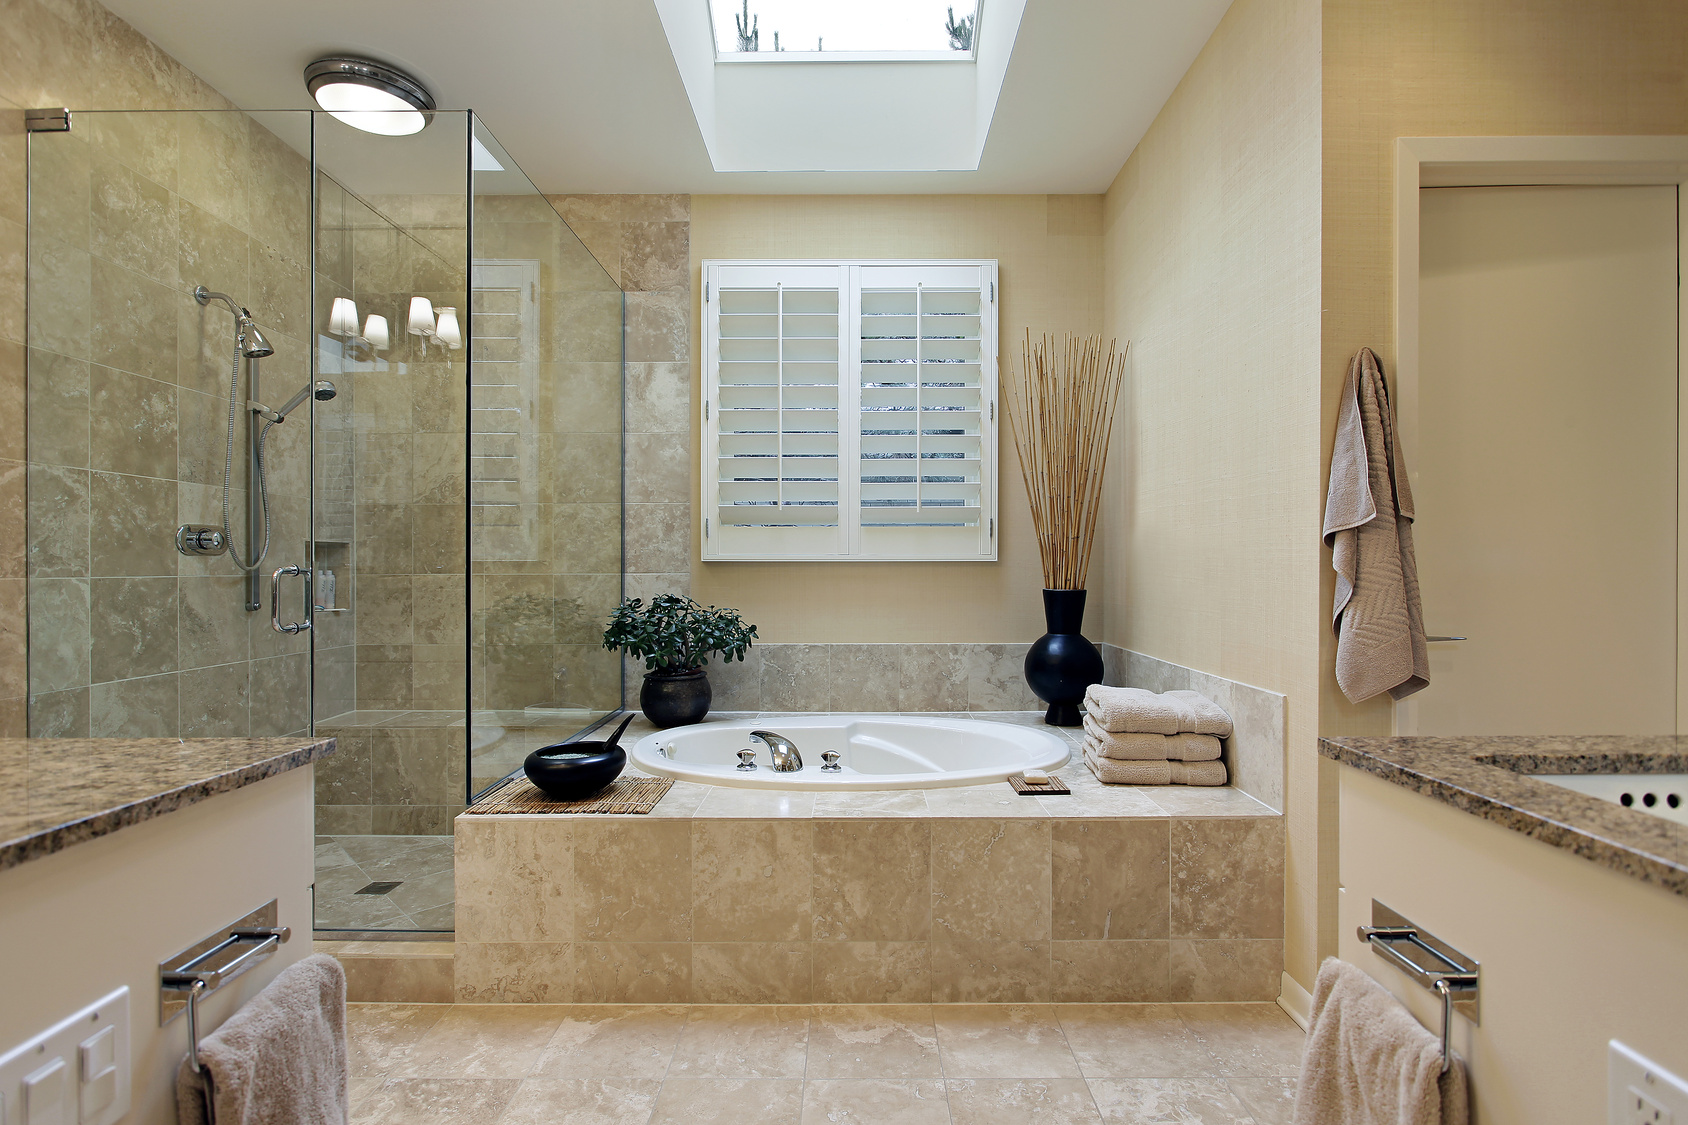 The top ideas and designs to enhance any ensuite bathroom qnud - Bathroom Tile Designs